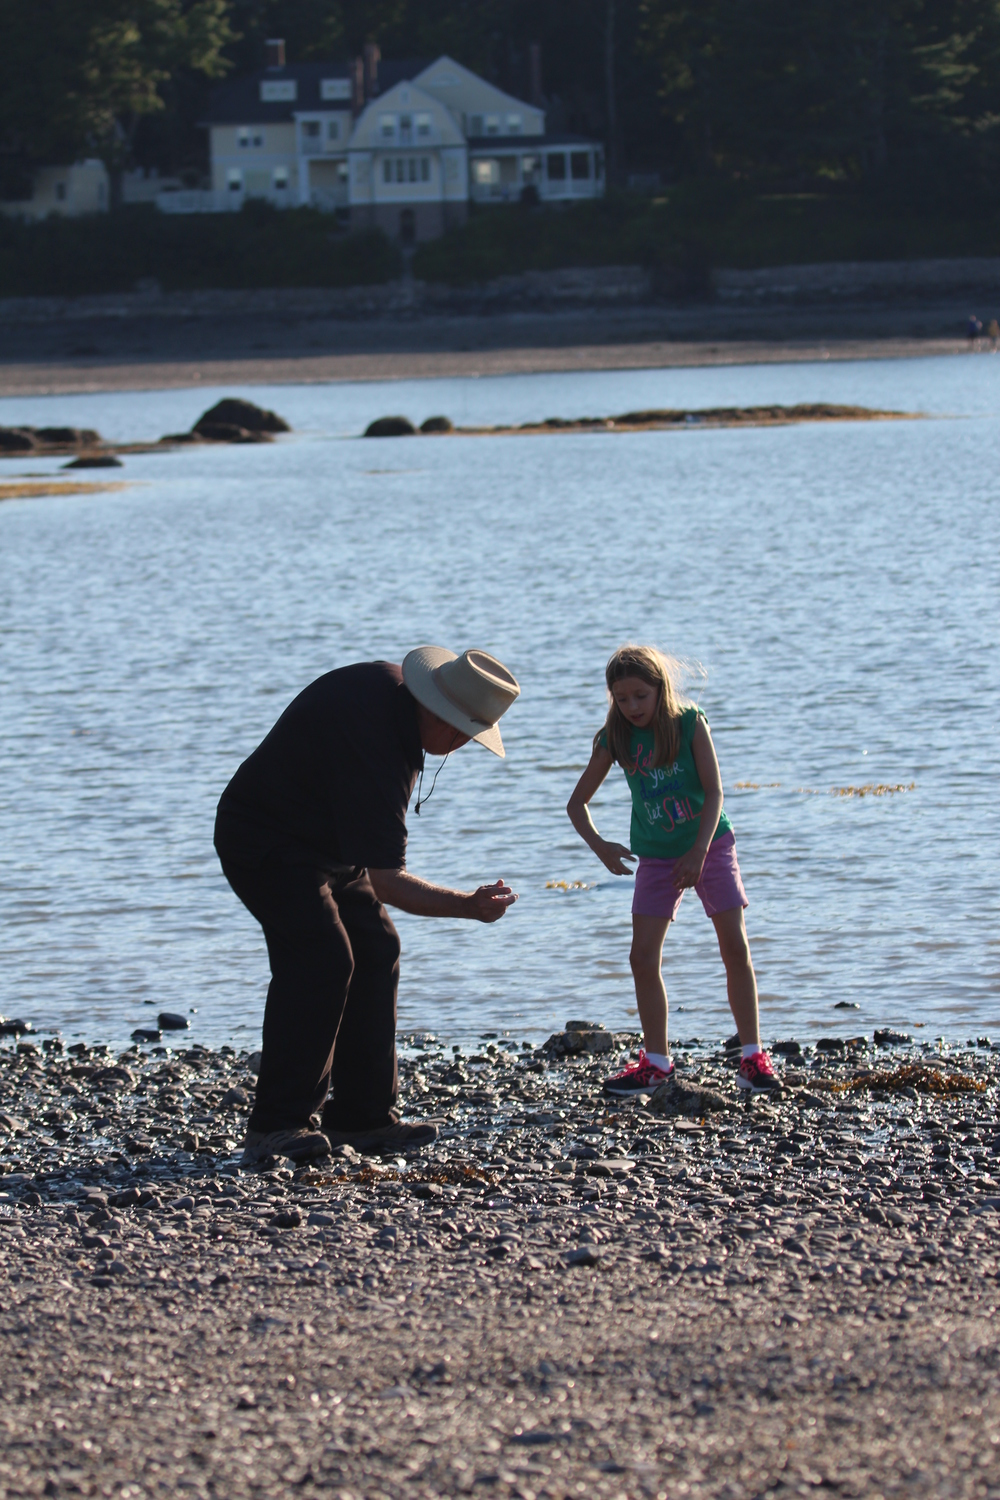 So she got her next lesson of the day...this time a lesson on rock skipping from Gramps Fuzz!